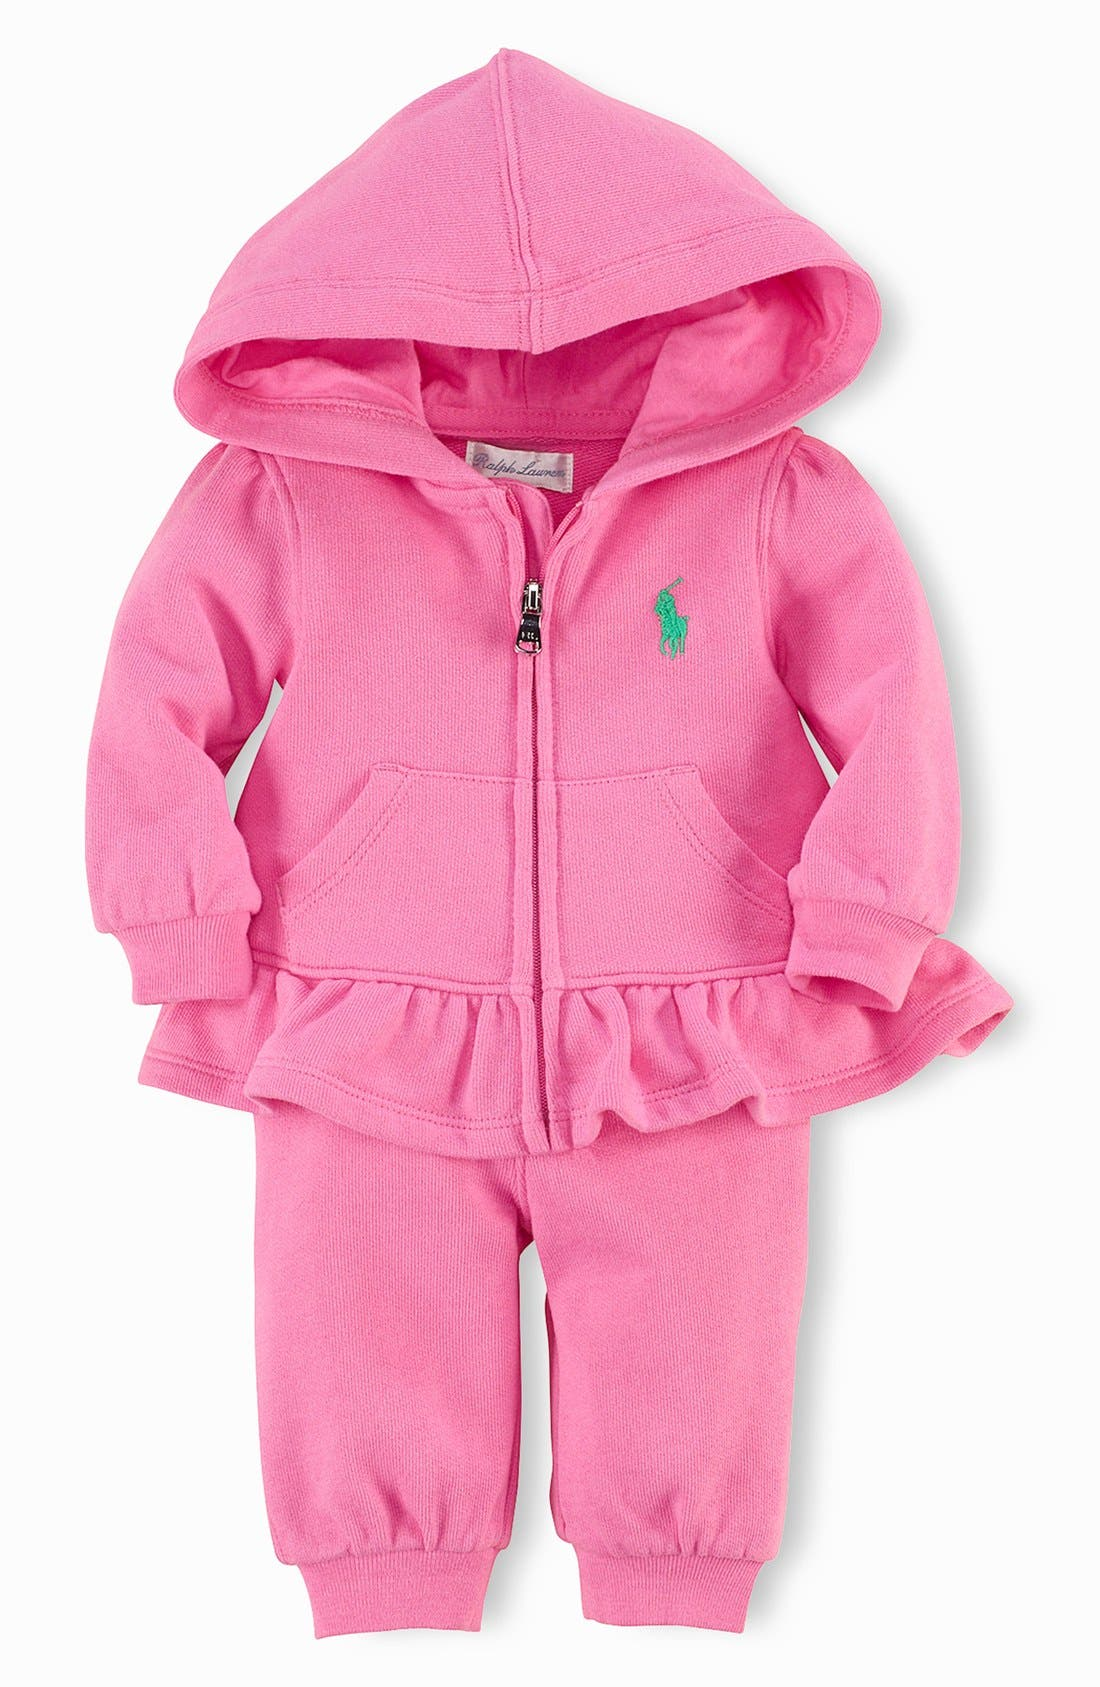 Main Image - Ralph Lauren French Terry Two Piece Set (Baby Girls)